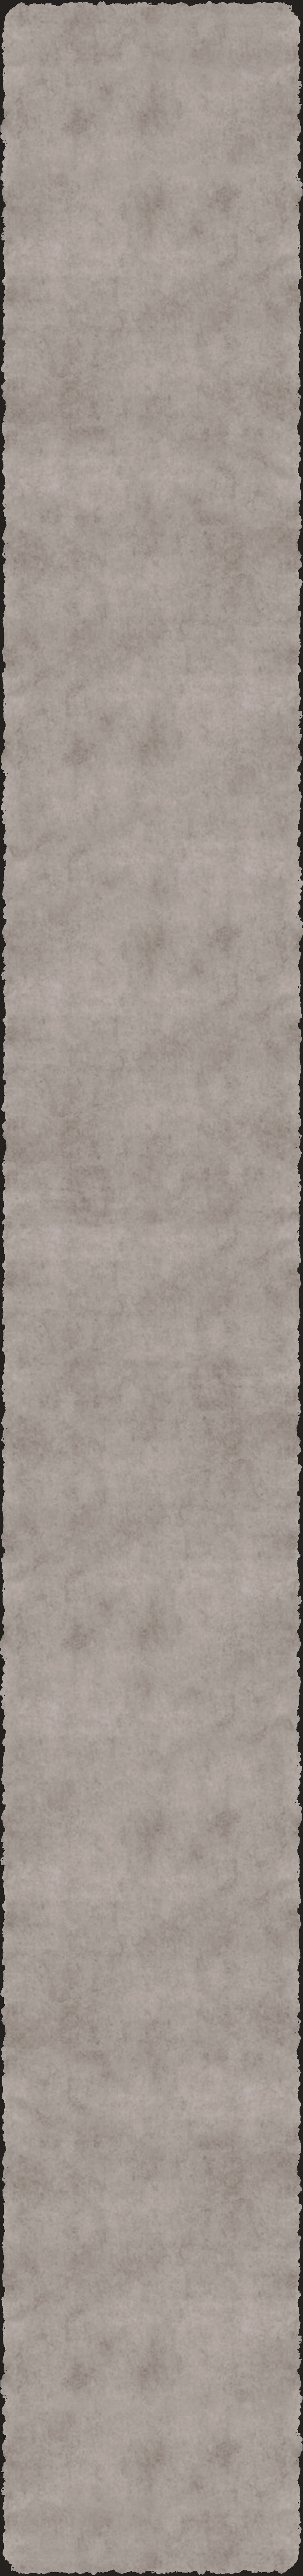 Parchment Background Image for Joint Projects, Custom Content, L-33's POE Building 4 Set, Page 2 on FlightToAtlantis.net